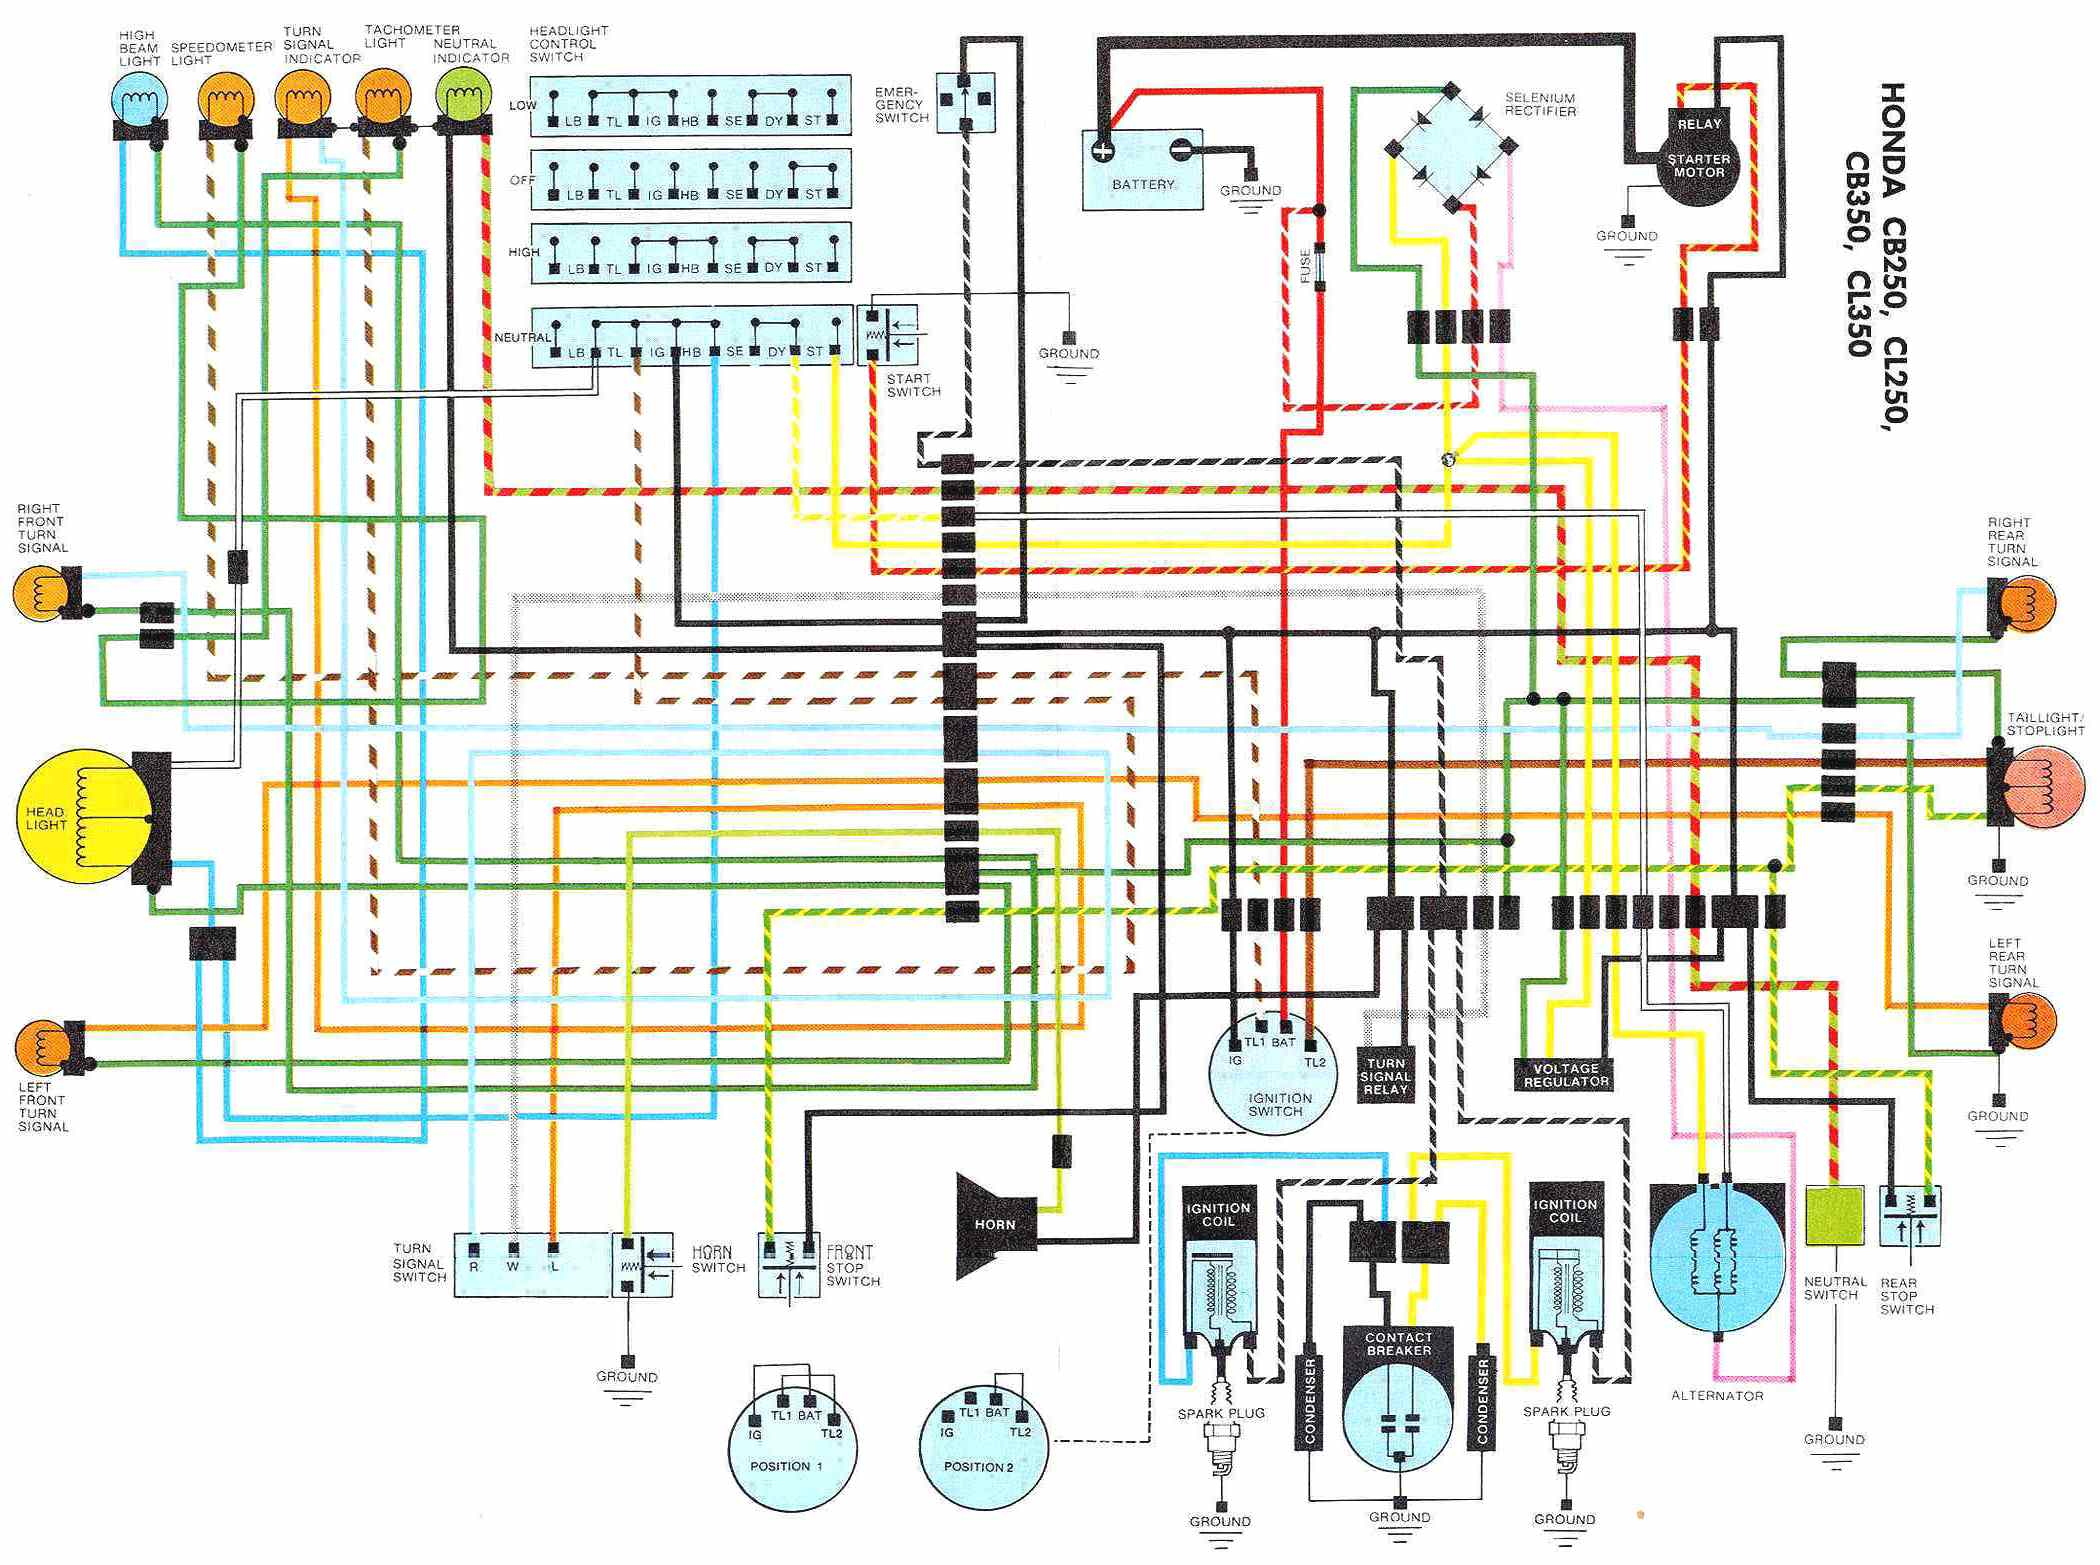 Honda Charging System Diagram - Complete Wiring Diagrams • on 2011 honda pilot wiring diagram, 2007 honda cr-v wiring diagram, 1995 honda prelude wiring diagram, 2002 honda crv wiring diagram, 2001 honda civic wiring diagram, 2002 audi a4 wiring diagram, 2007 honda civic wiring diagram, honda civic electrical diagram, 2003 honda civic door speakers, 2003 ford super duty wiring diagram, 2003 gmc sierra 2500hd wiring diagram, 2003 jaguar x-type wiring diagram, 2003 subaru forester wiring diagram, honda civic automatic transmission diagram, 2007 honda element wiring diagram, 2003 toyota prius hybrid wiring diagram, 1985 honda prelude wiring diagram, 2003 honda civic seats, 2003 hyundai xg350 wiring diagram, 2003 honda civic headlight bulb replacement,